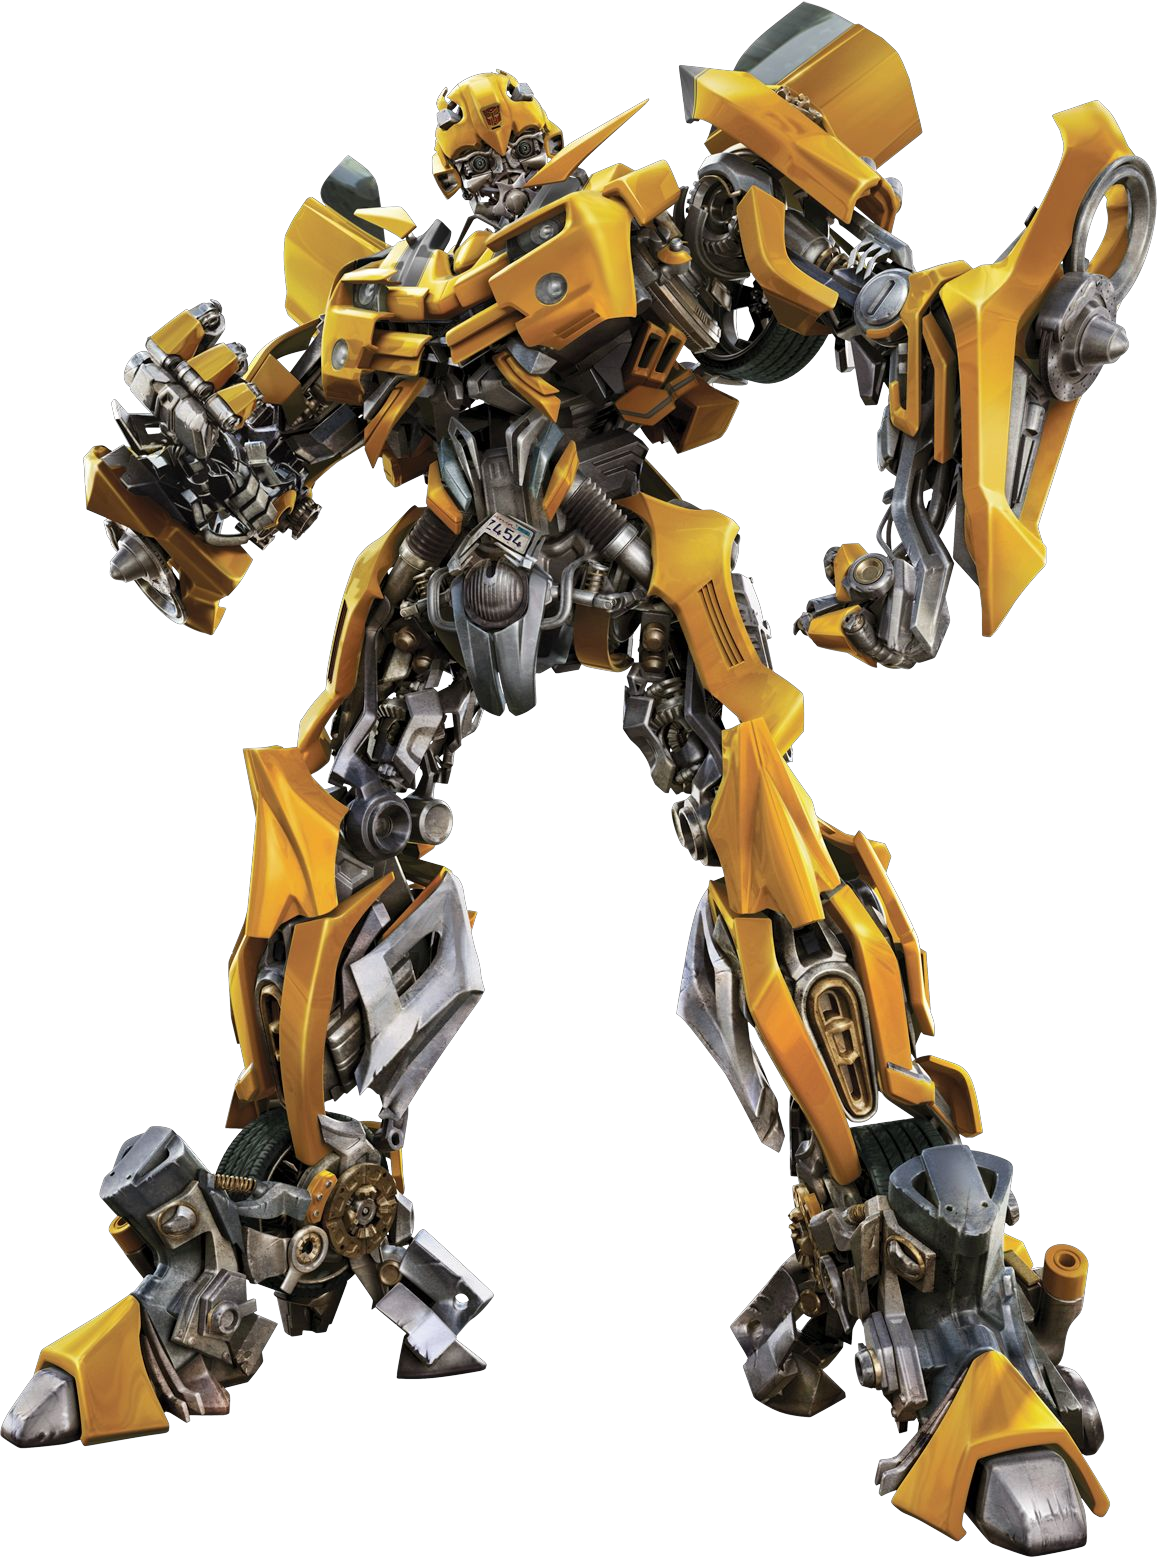 New TRANSFORMERS wallpaper Image PNG HQ HD Zeromin0